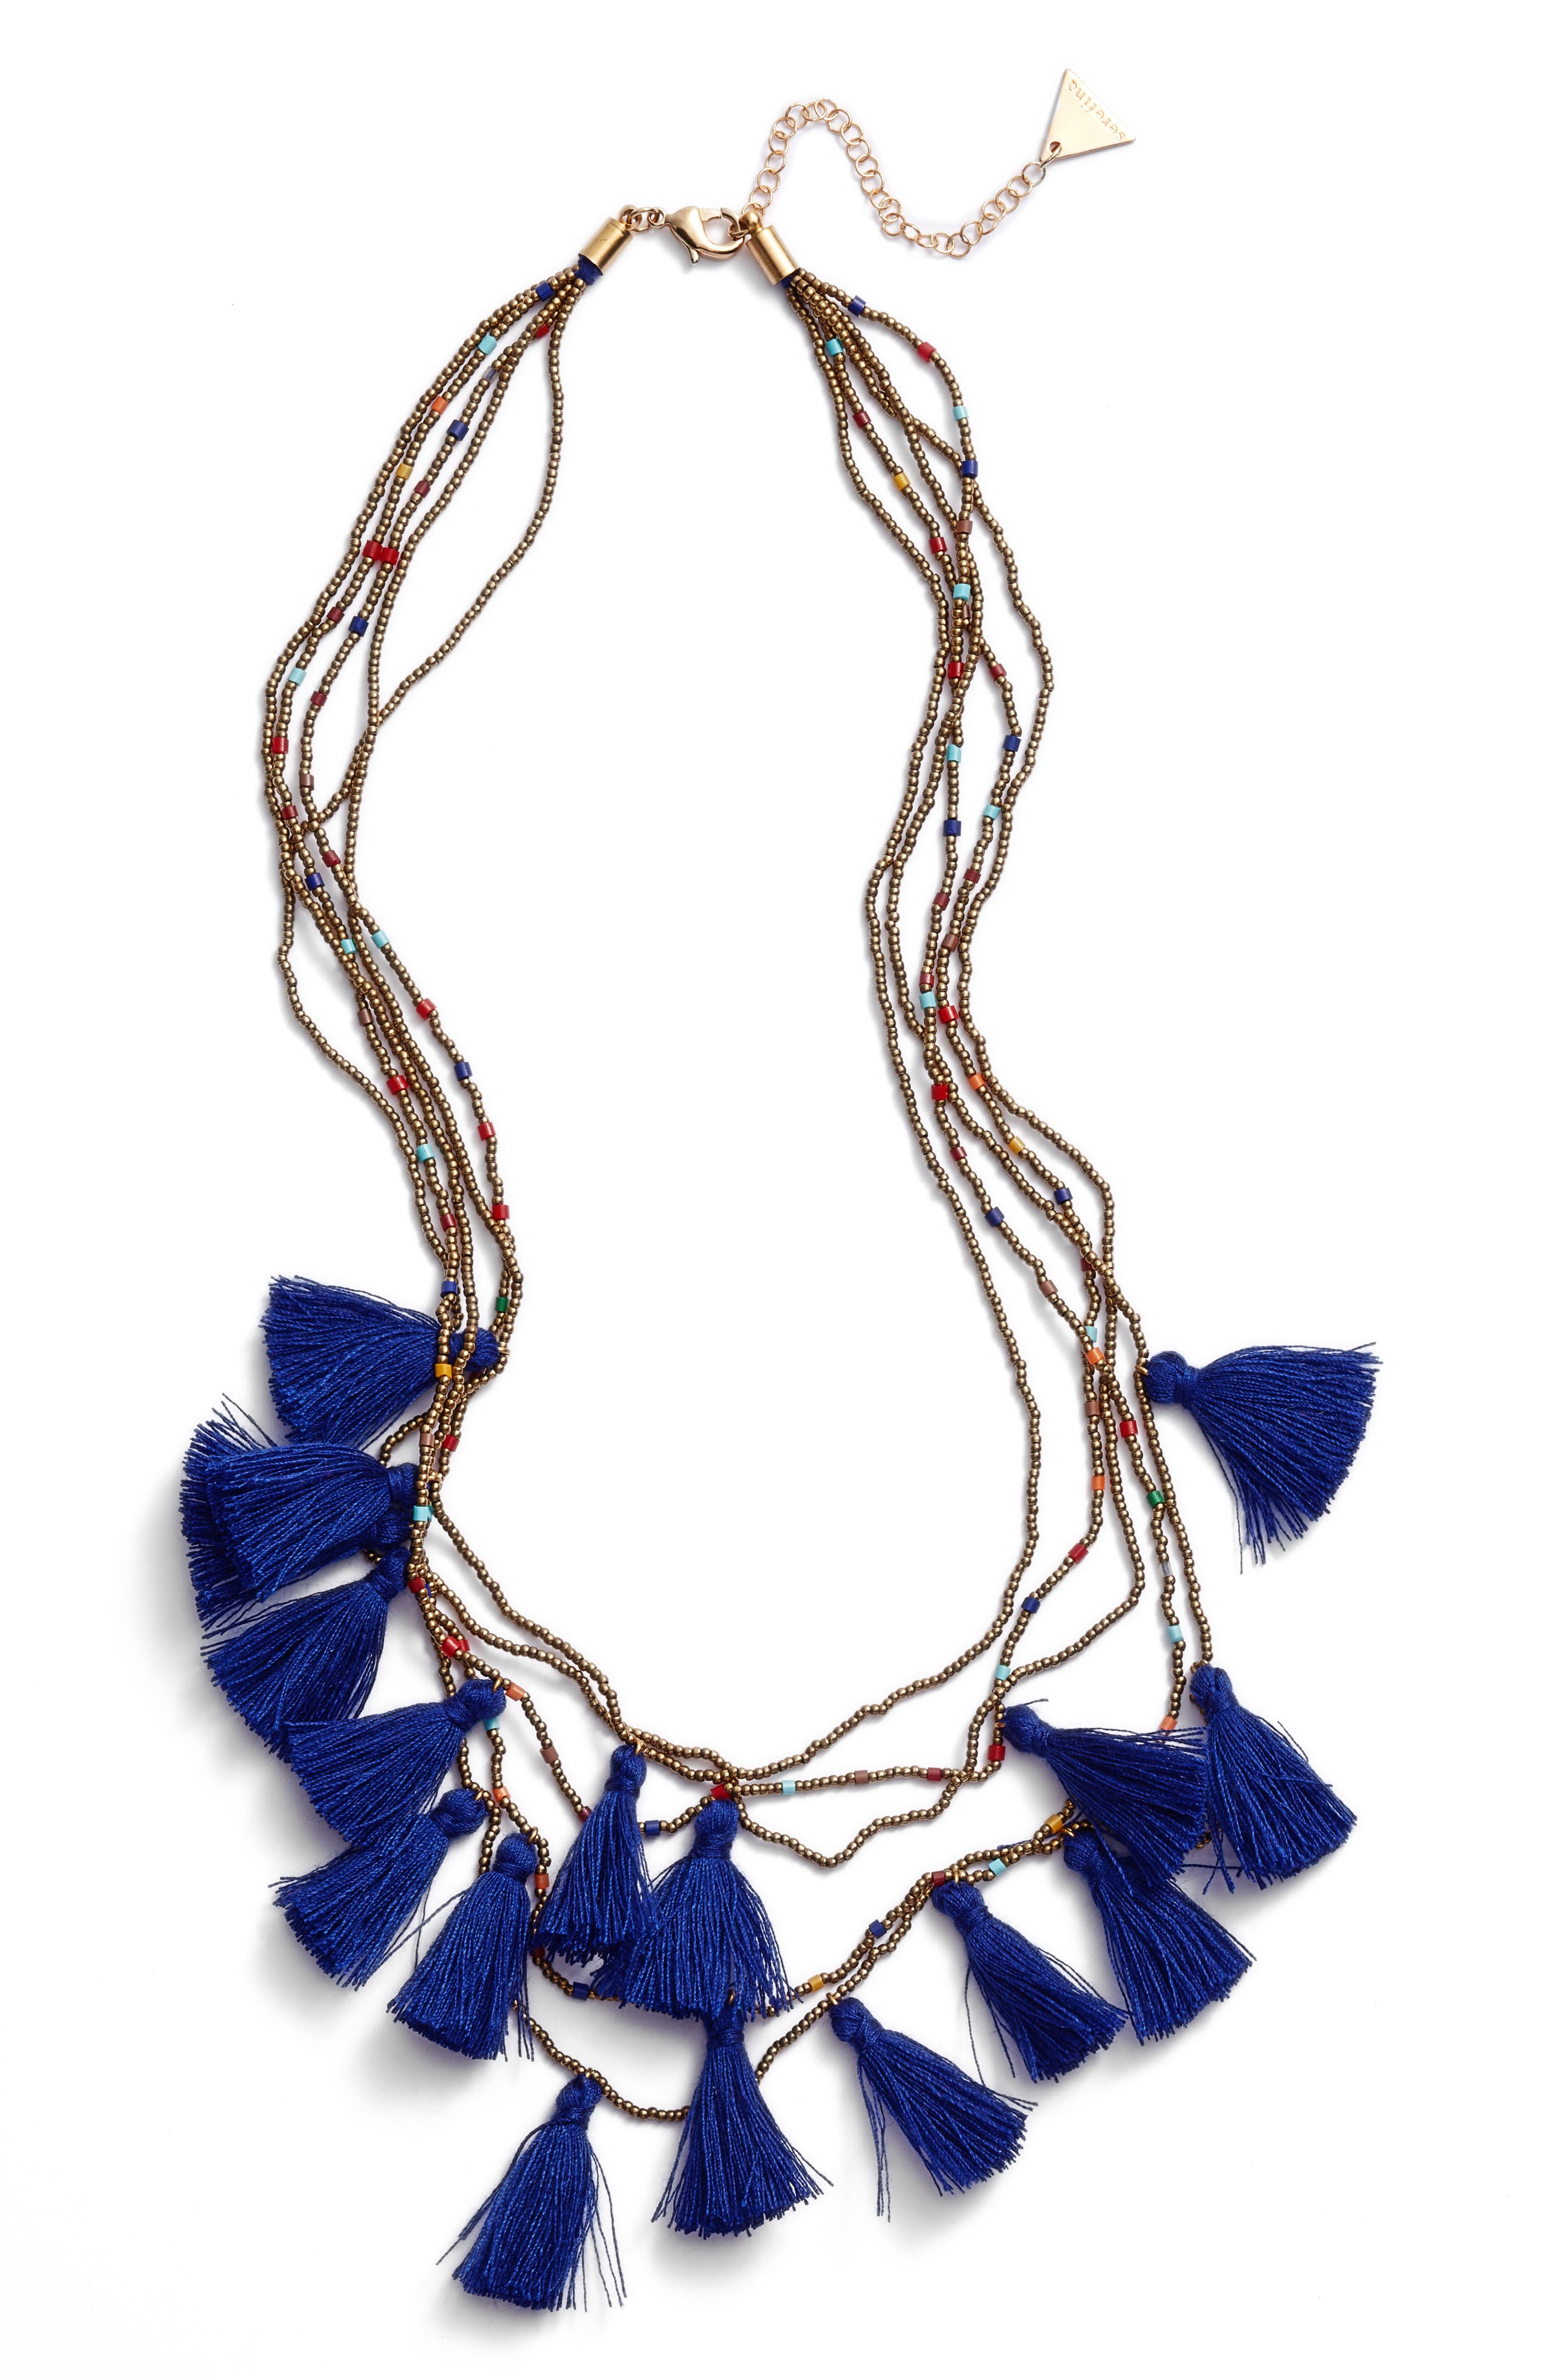 Layered Tassel Statement Necklace,                             Main thumbnail 1, color,                             400